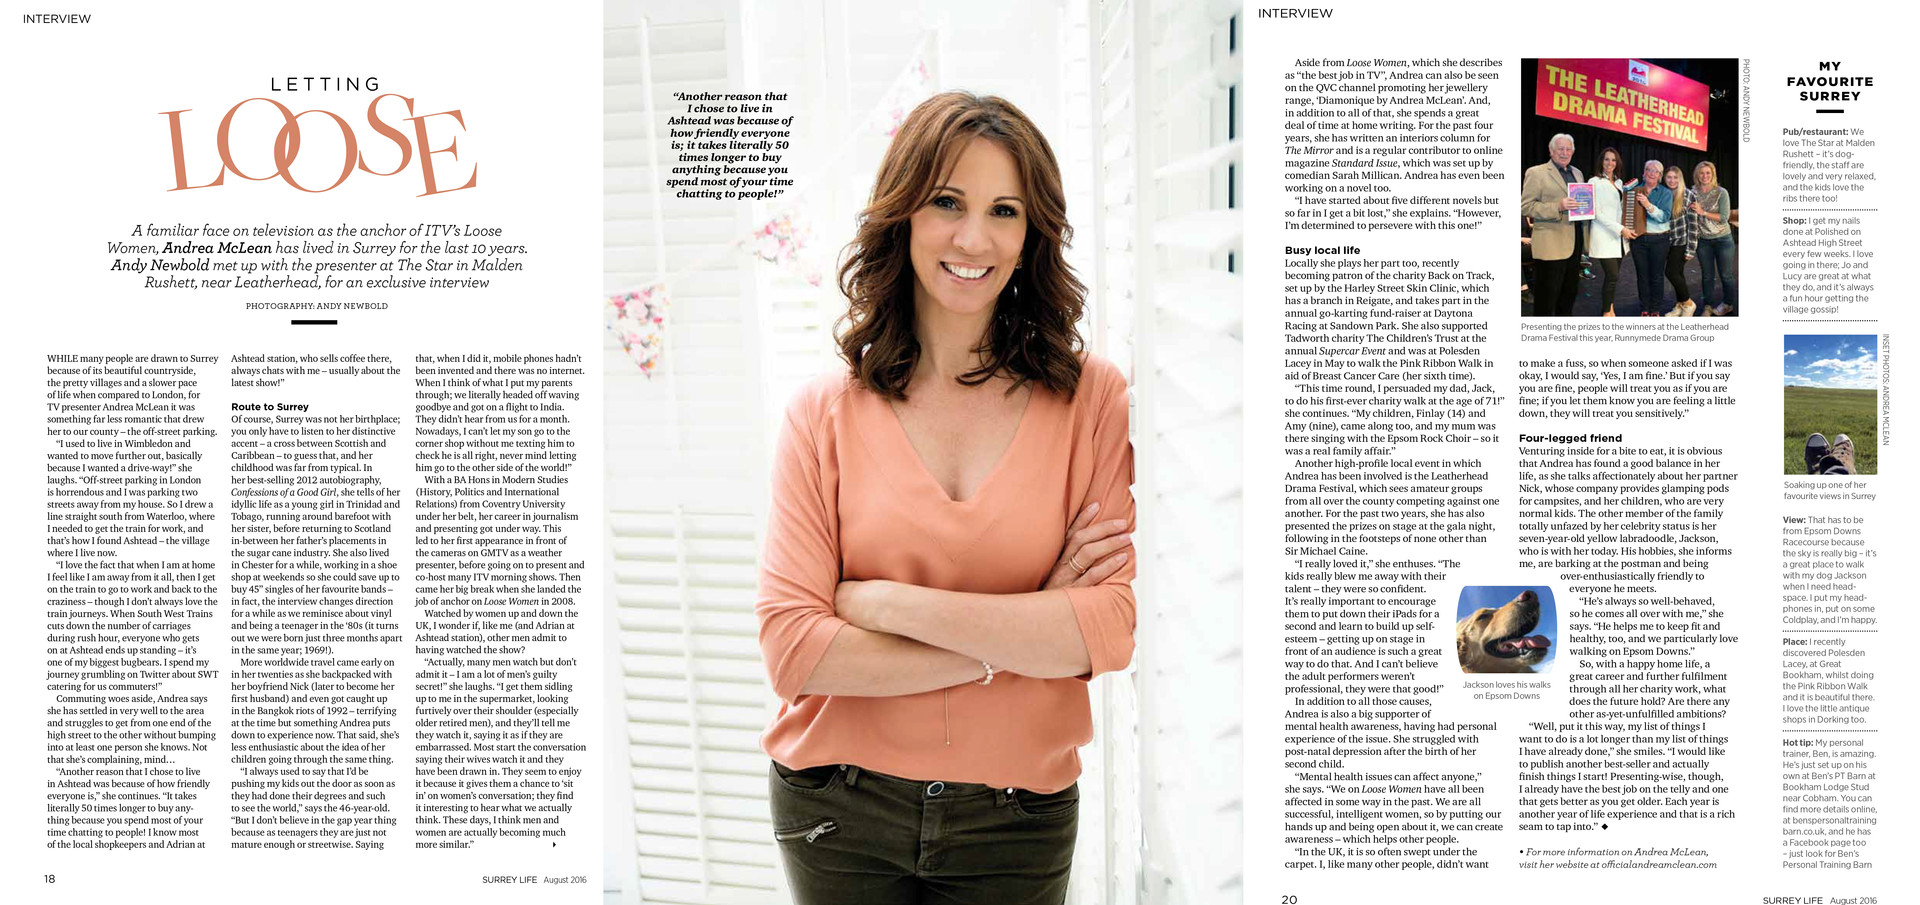 Surrey Life - Interview and Photo feature with Andrea McLean